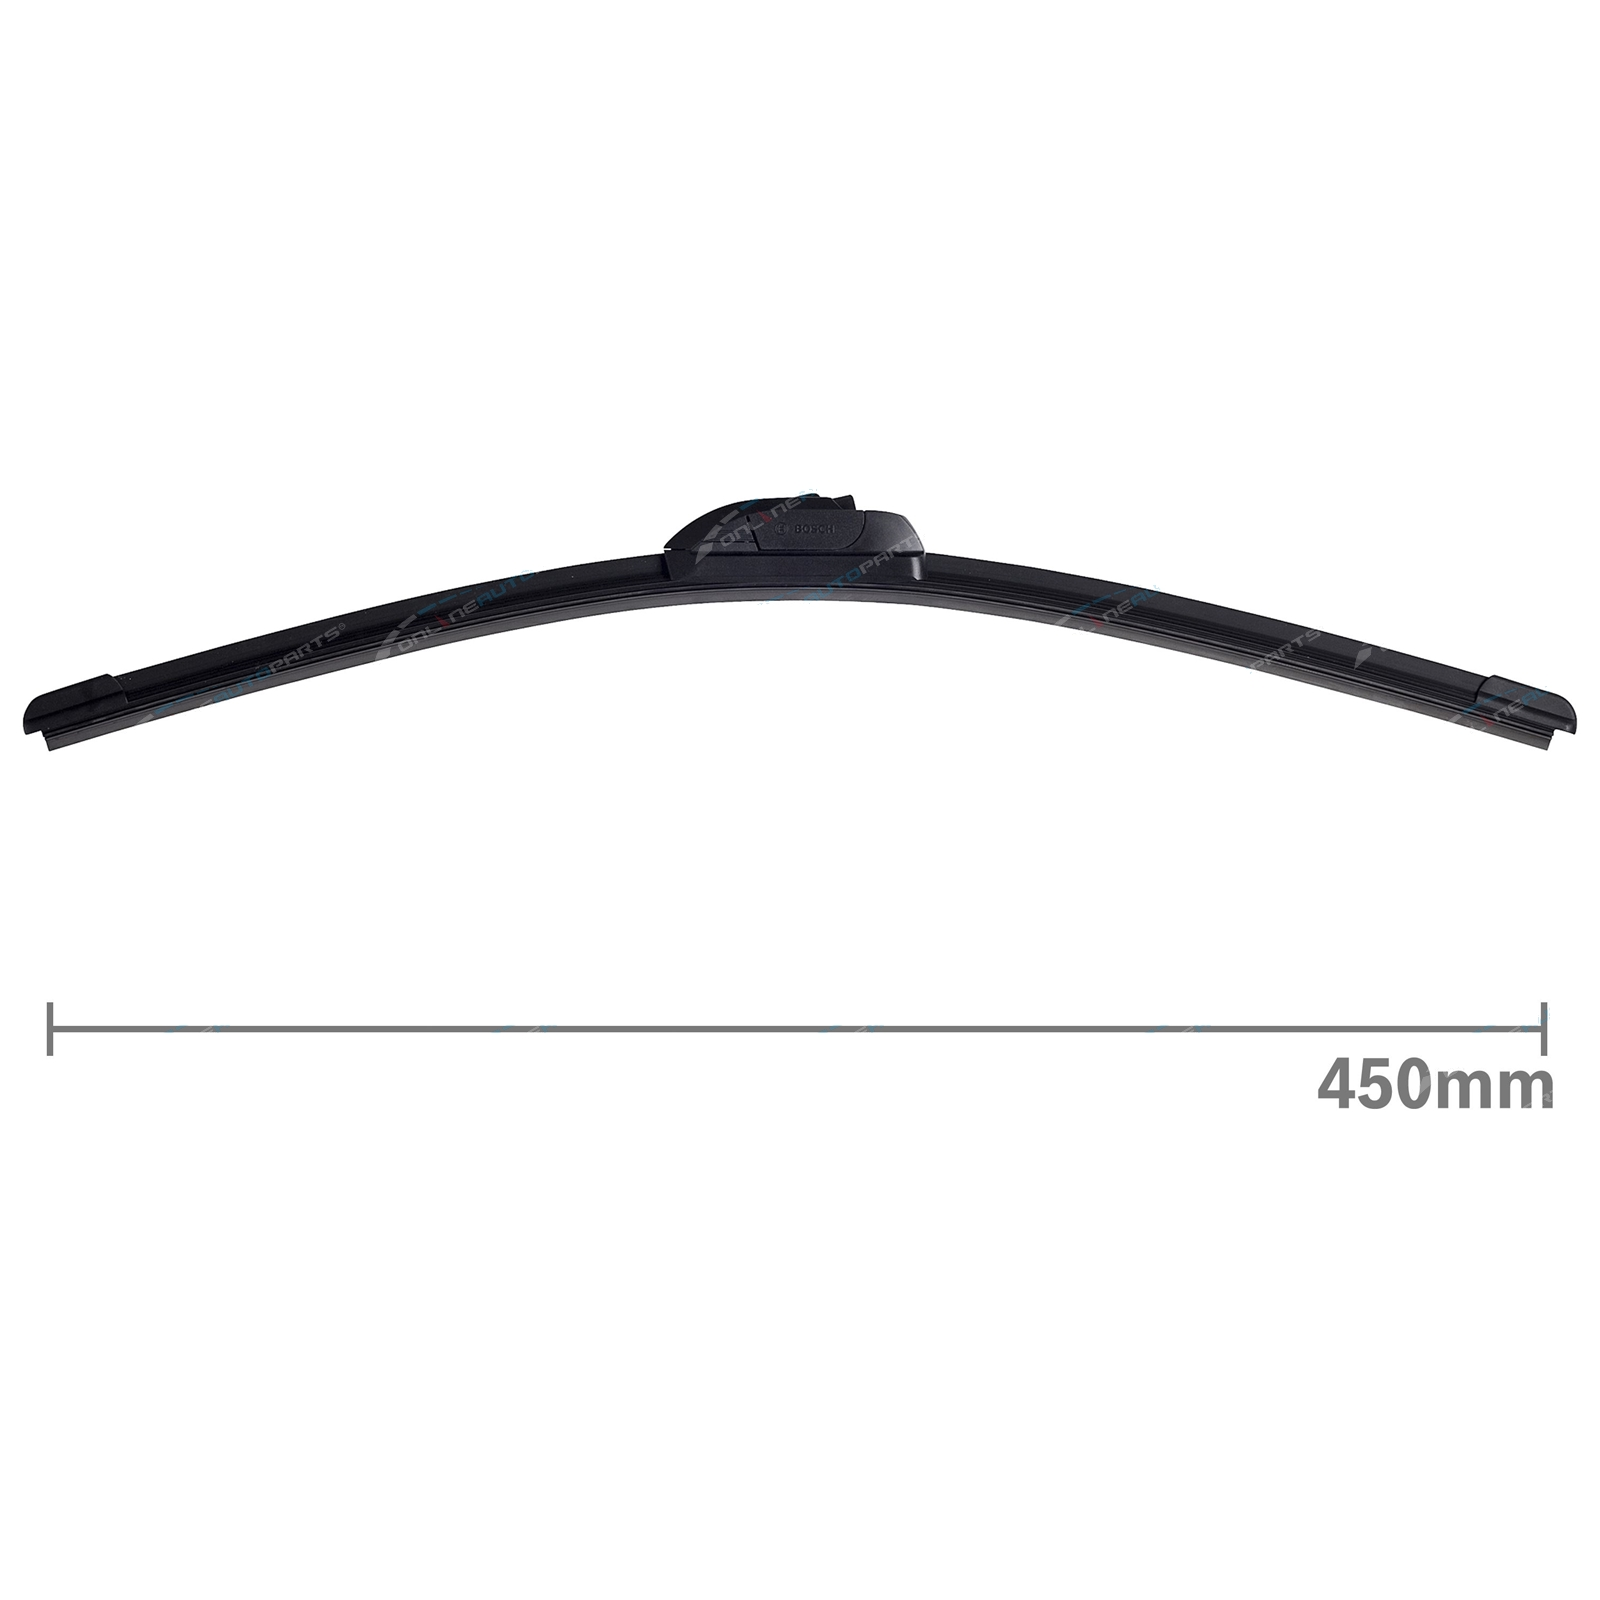 wiper blades wiper blade assembly bosch aerotwin bosch aerotwin. Black Bedroom Furniture Sets. Home Design Ideas